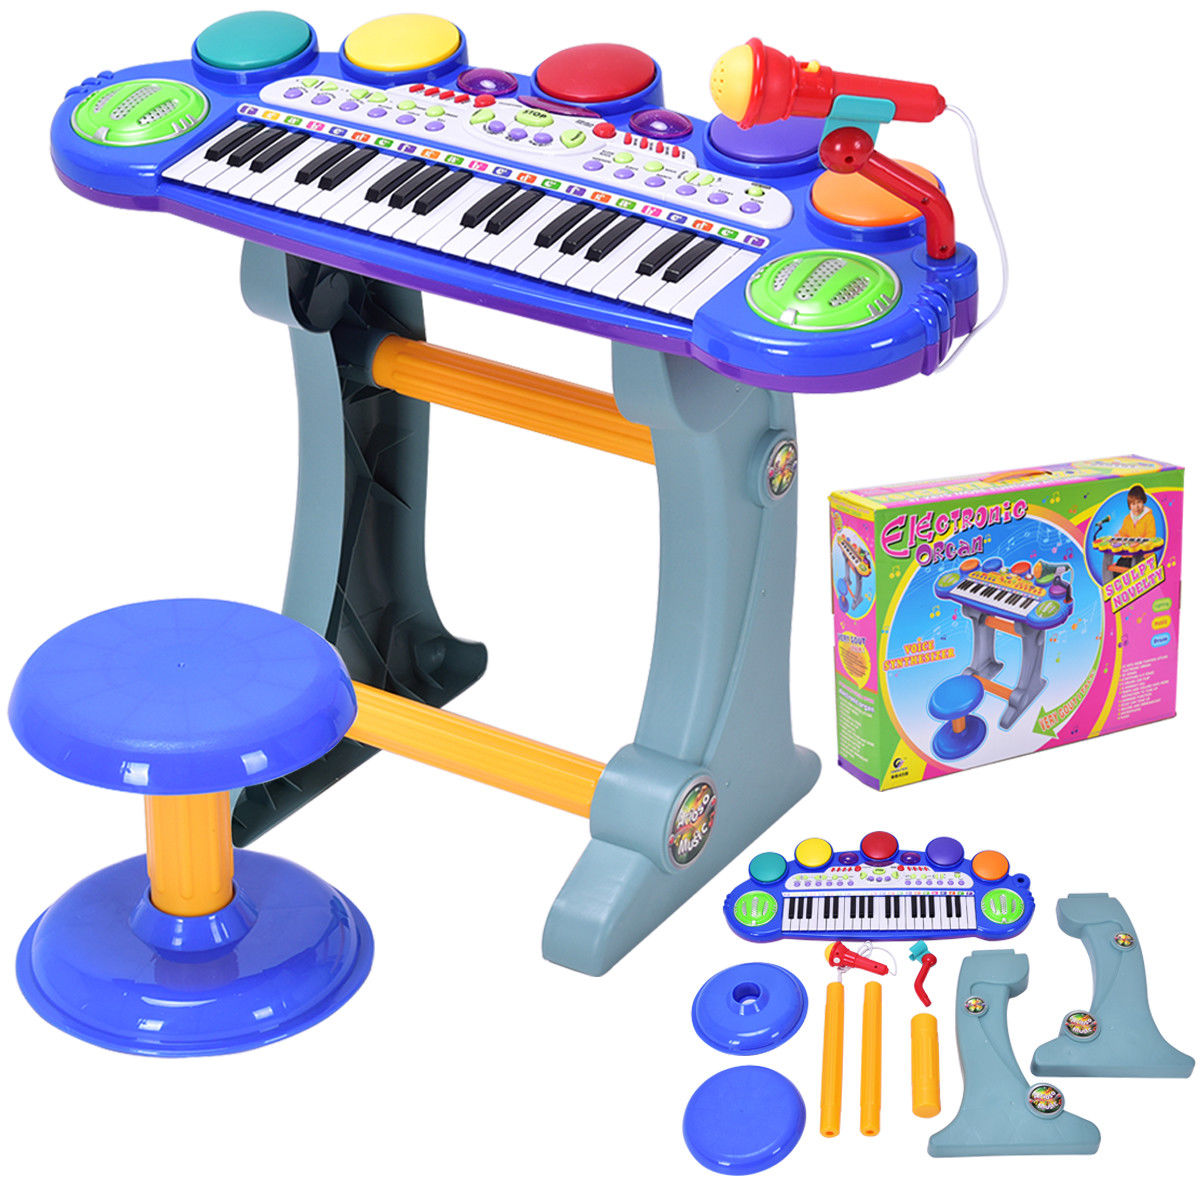 Costway 37 Key Kids Musical Electronic Keyboard Organ Piano Microphone Synthesizer Stool by Costway